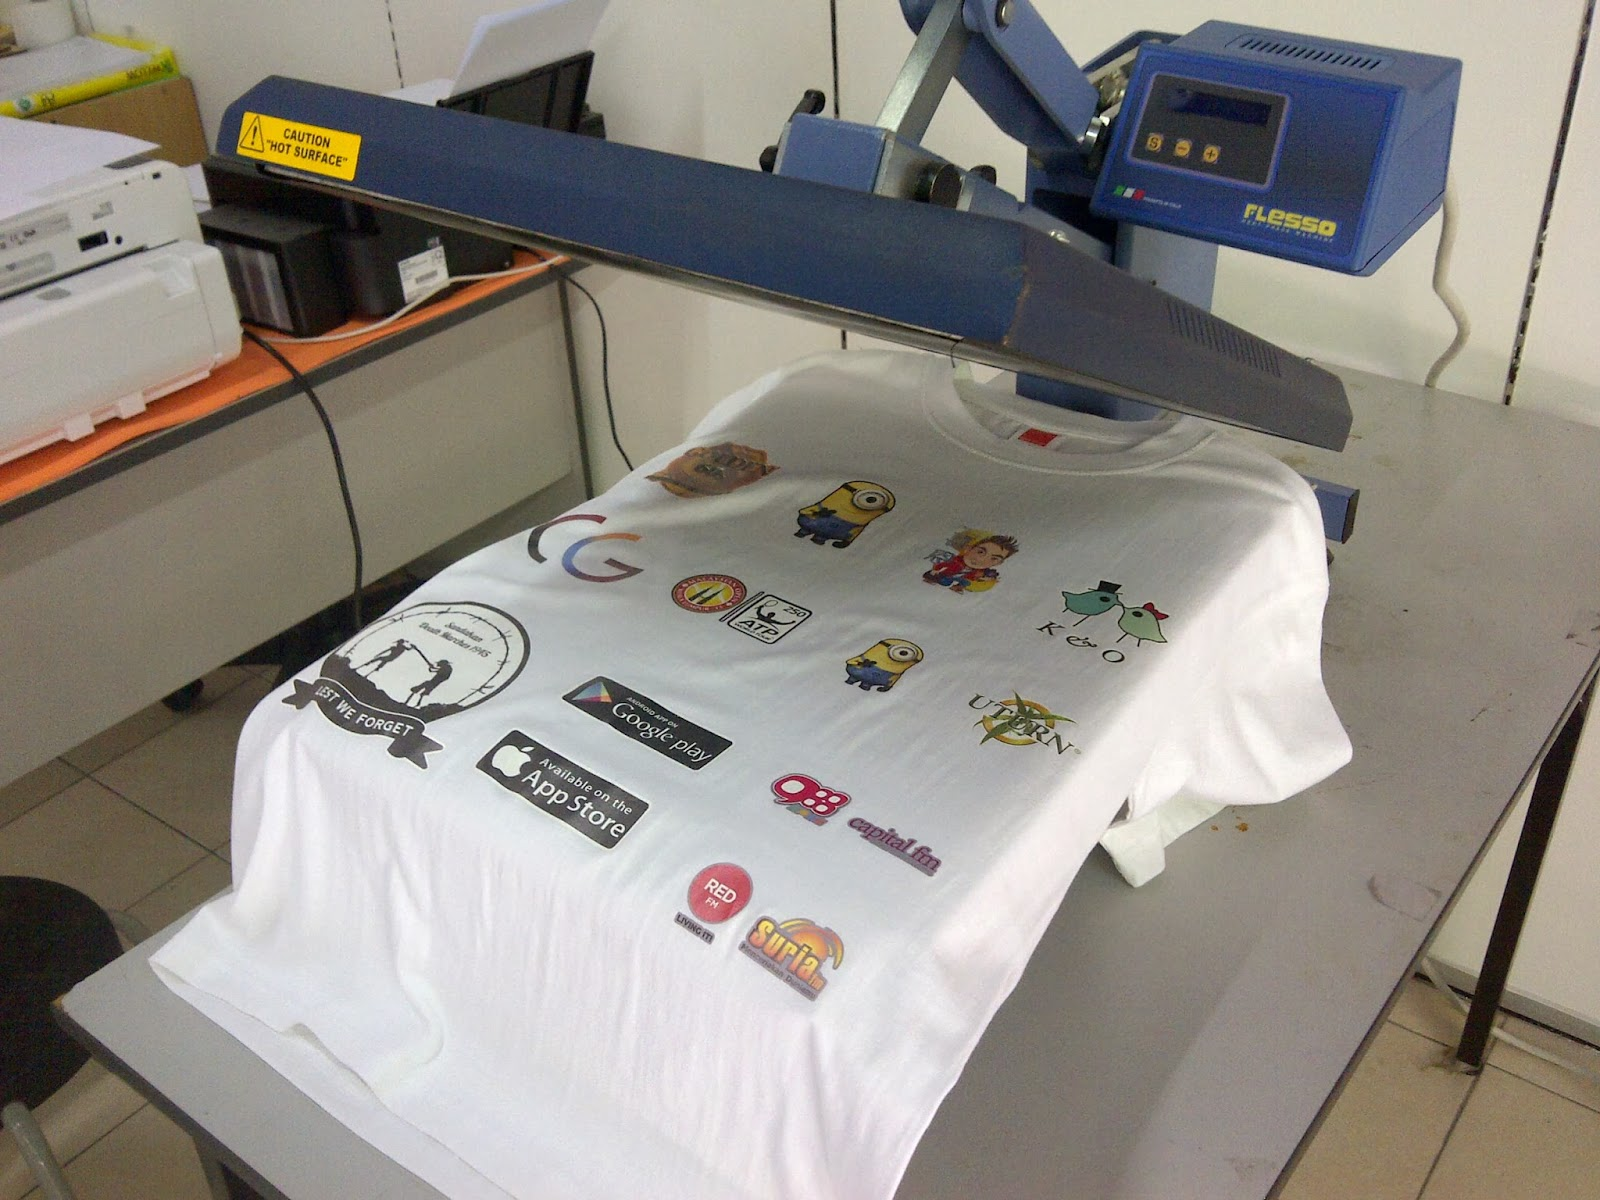 Tshirt printing mug printing in kl button badge heat for T shirt printing machines